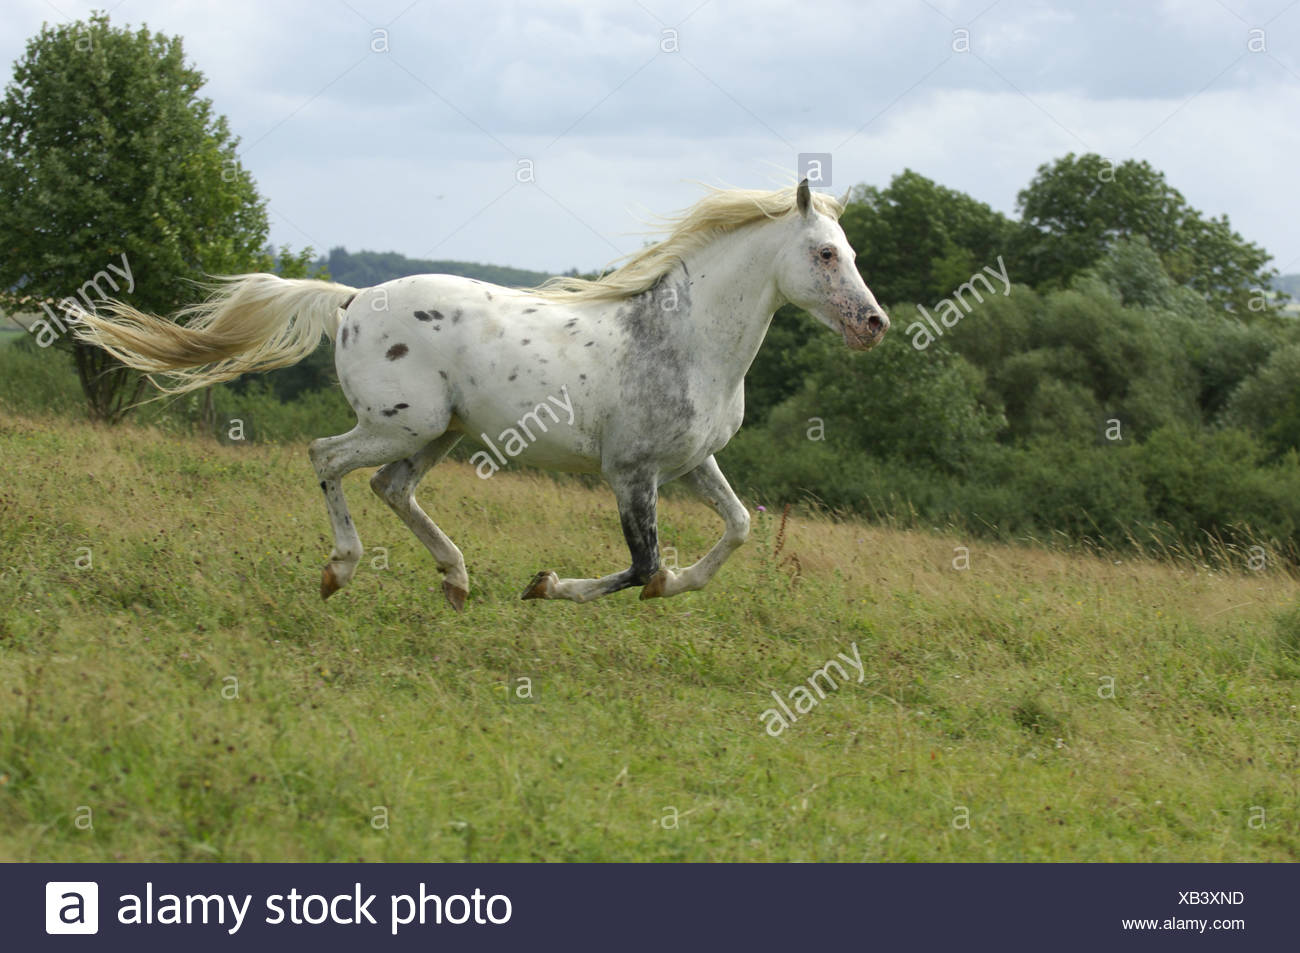 domestic horse (Equus przewalskii f. caballus), appaloosa horse mixed with english thoroughbred, stallion gallopping on a meado - Stock Image